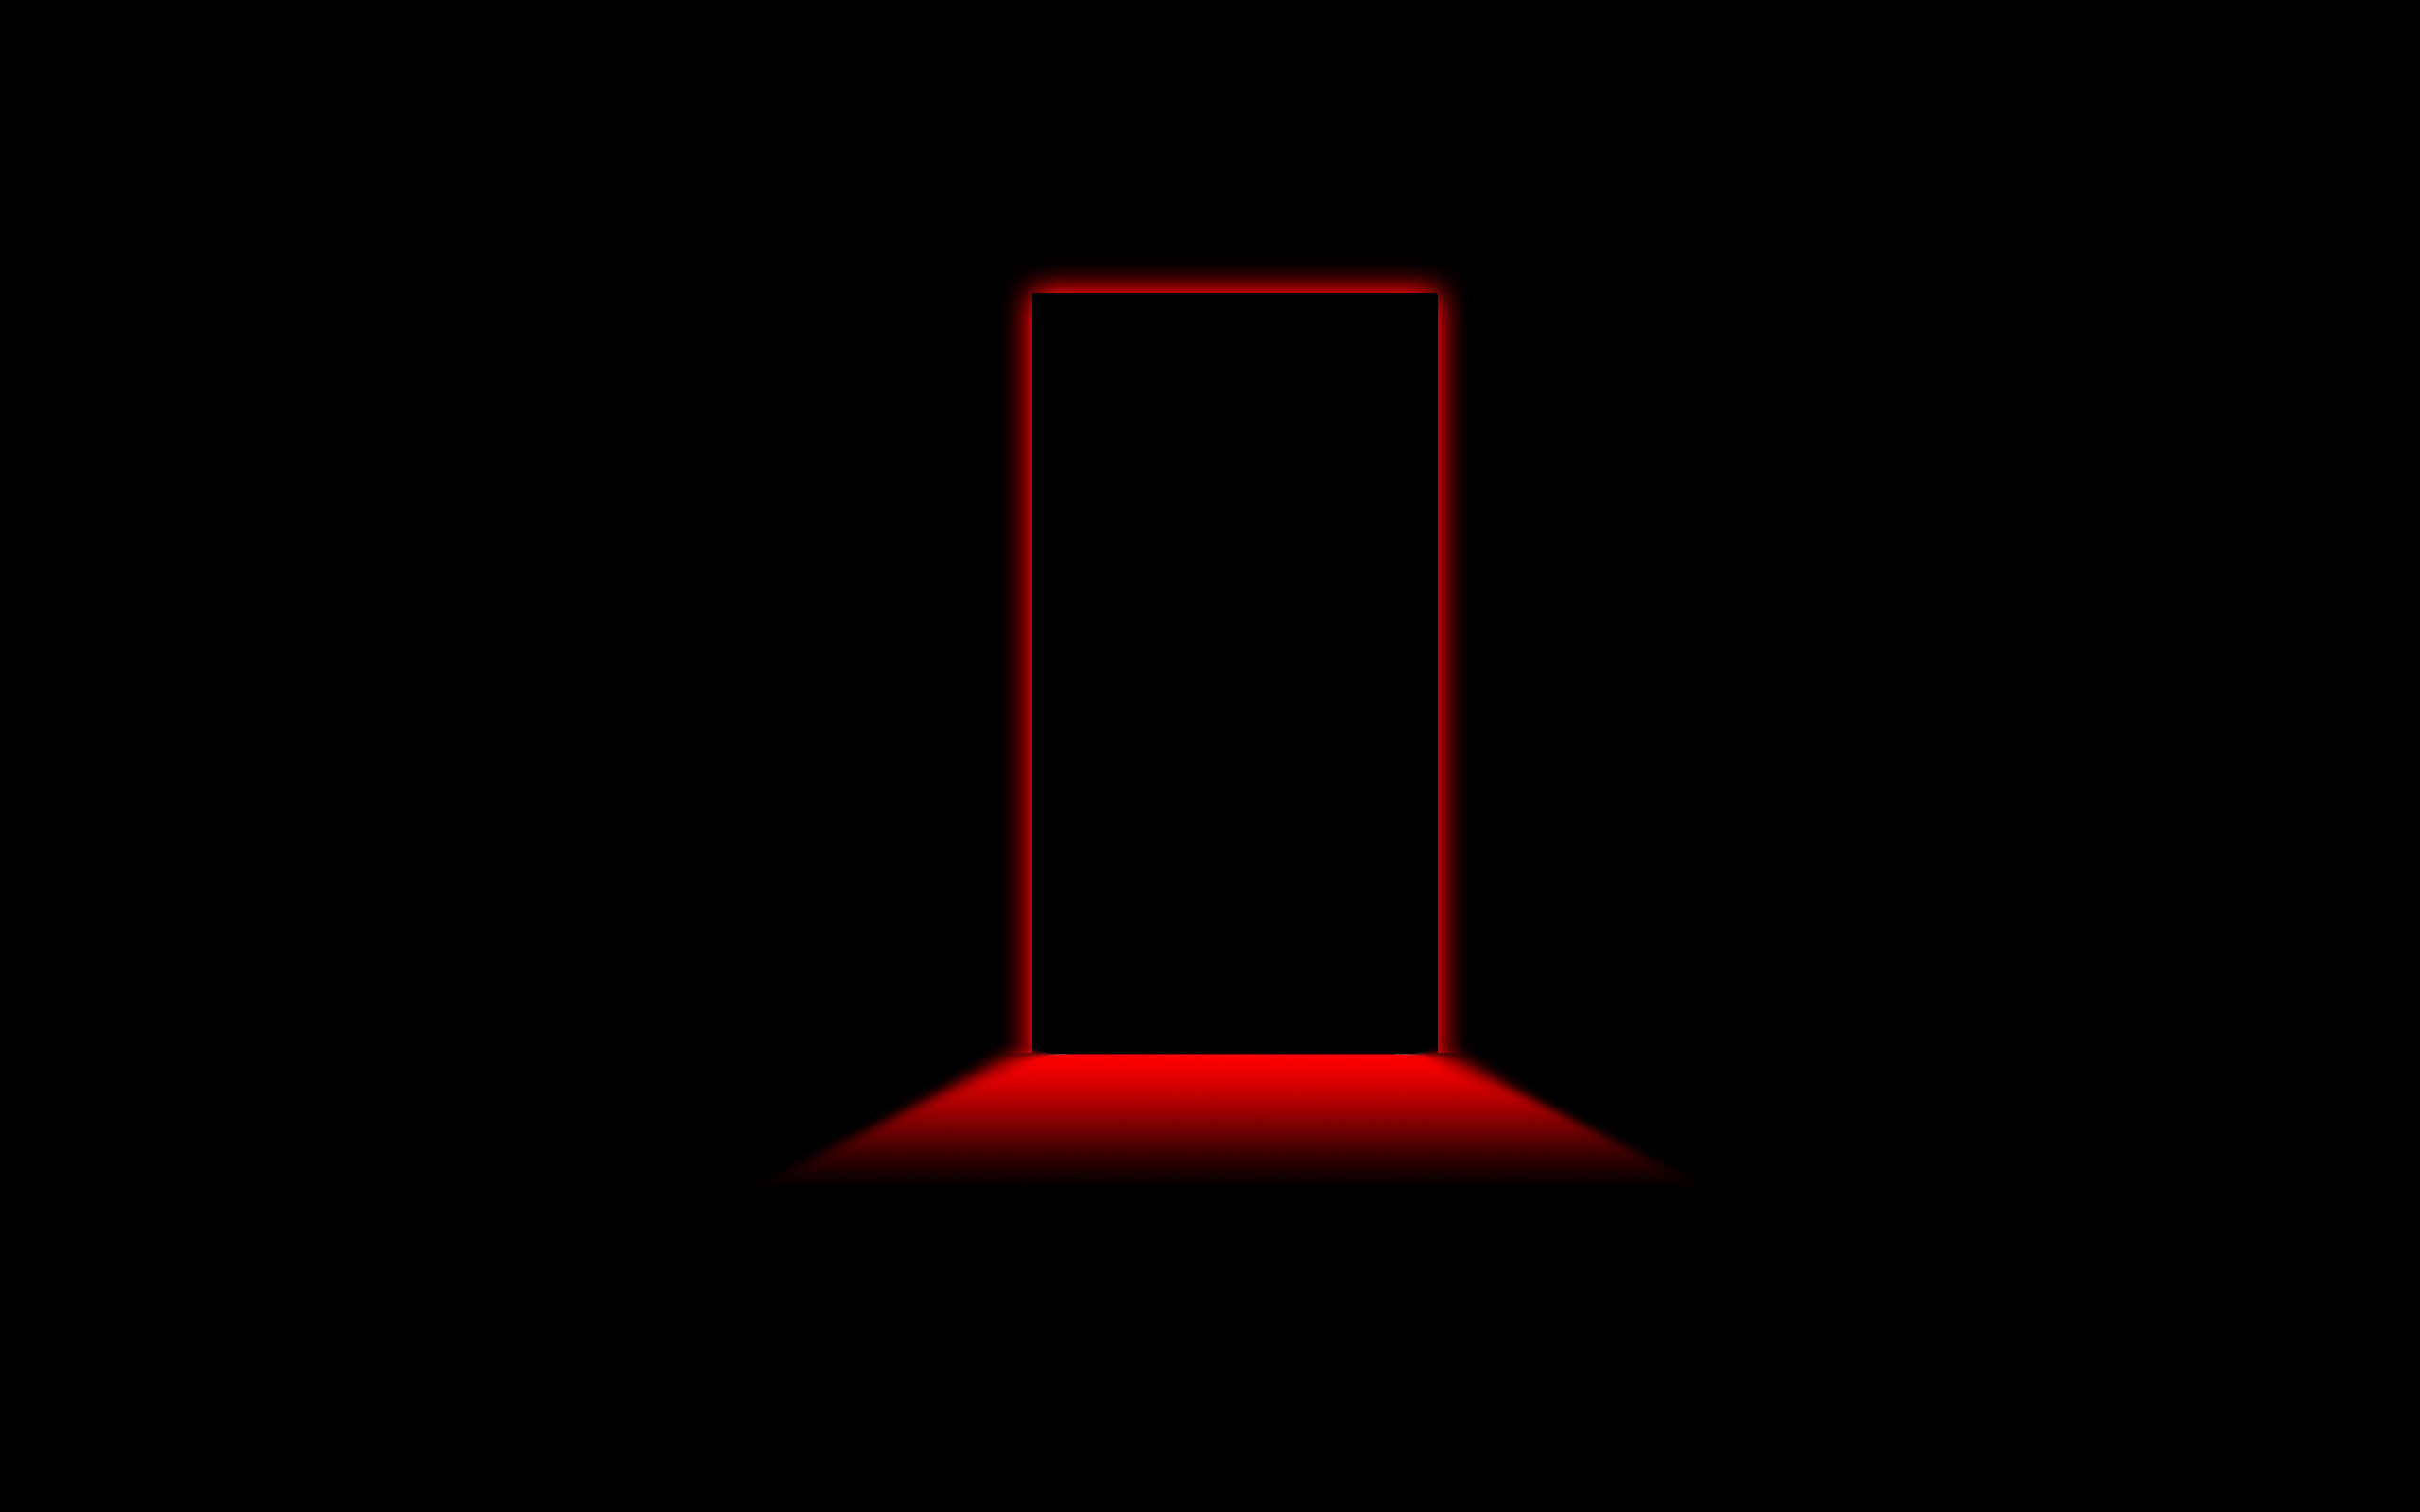 Black-and-red-room-cool-hd-wallpapers